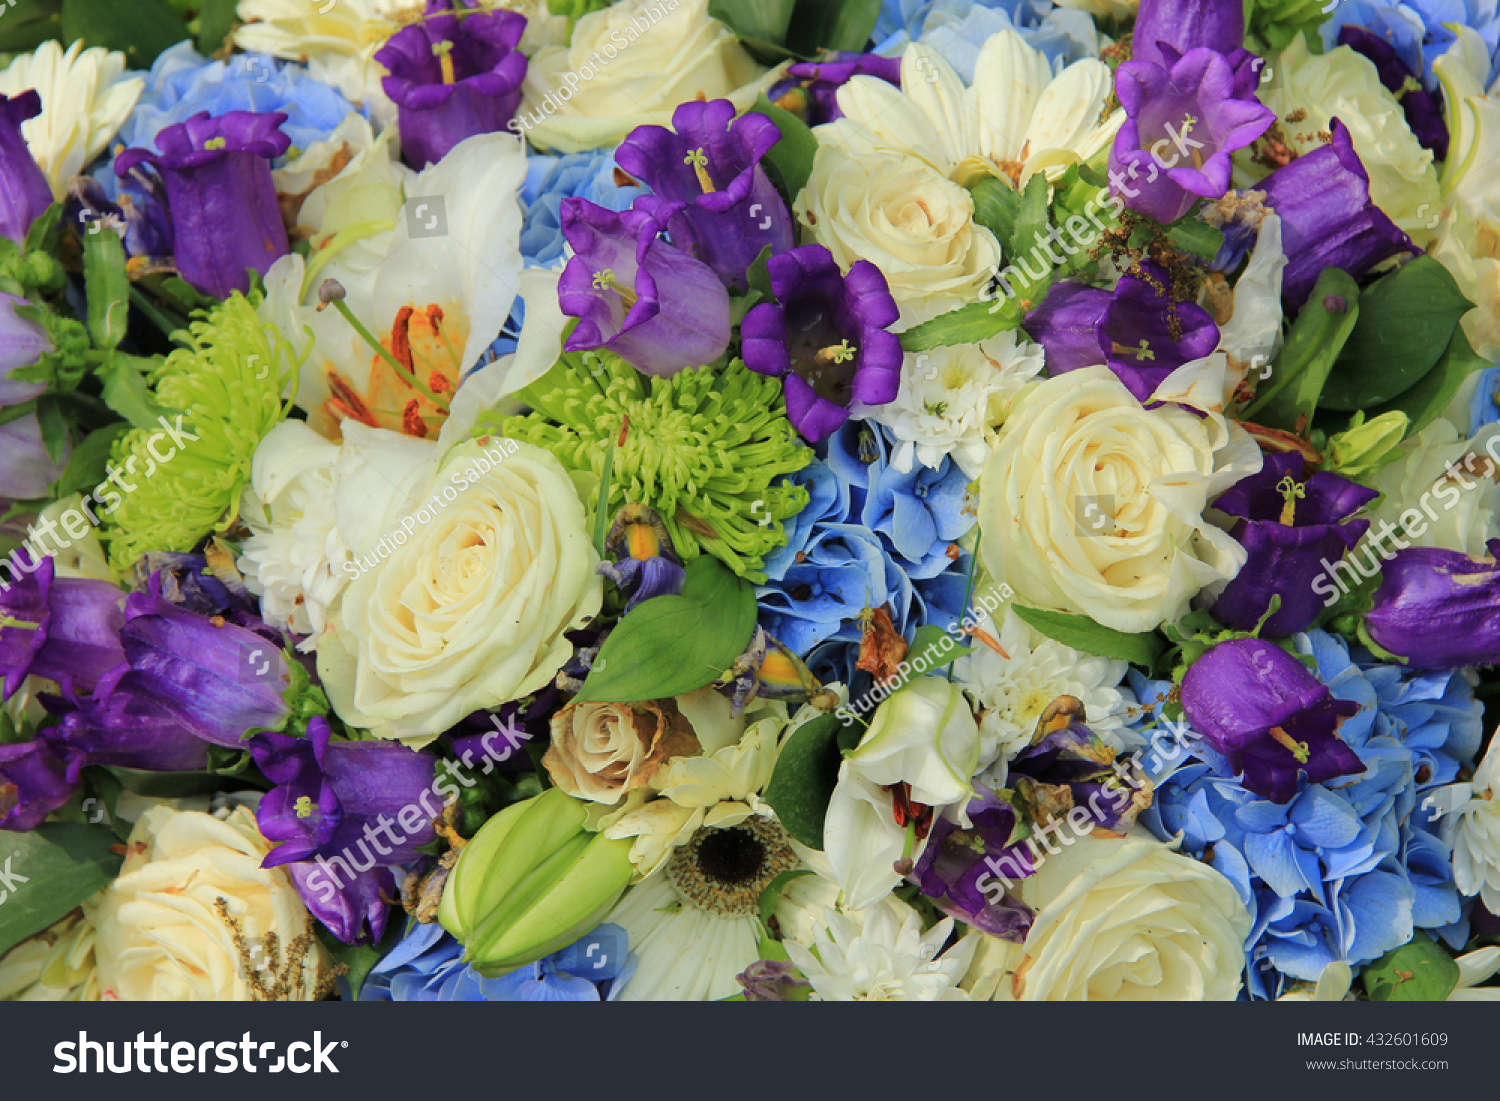 blue hydrangea and purple roses in a blue purple wedding bouquet and centerpieces ez canvas